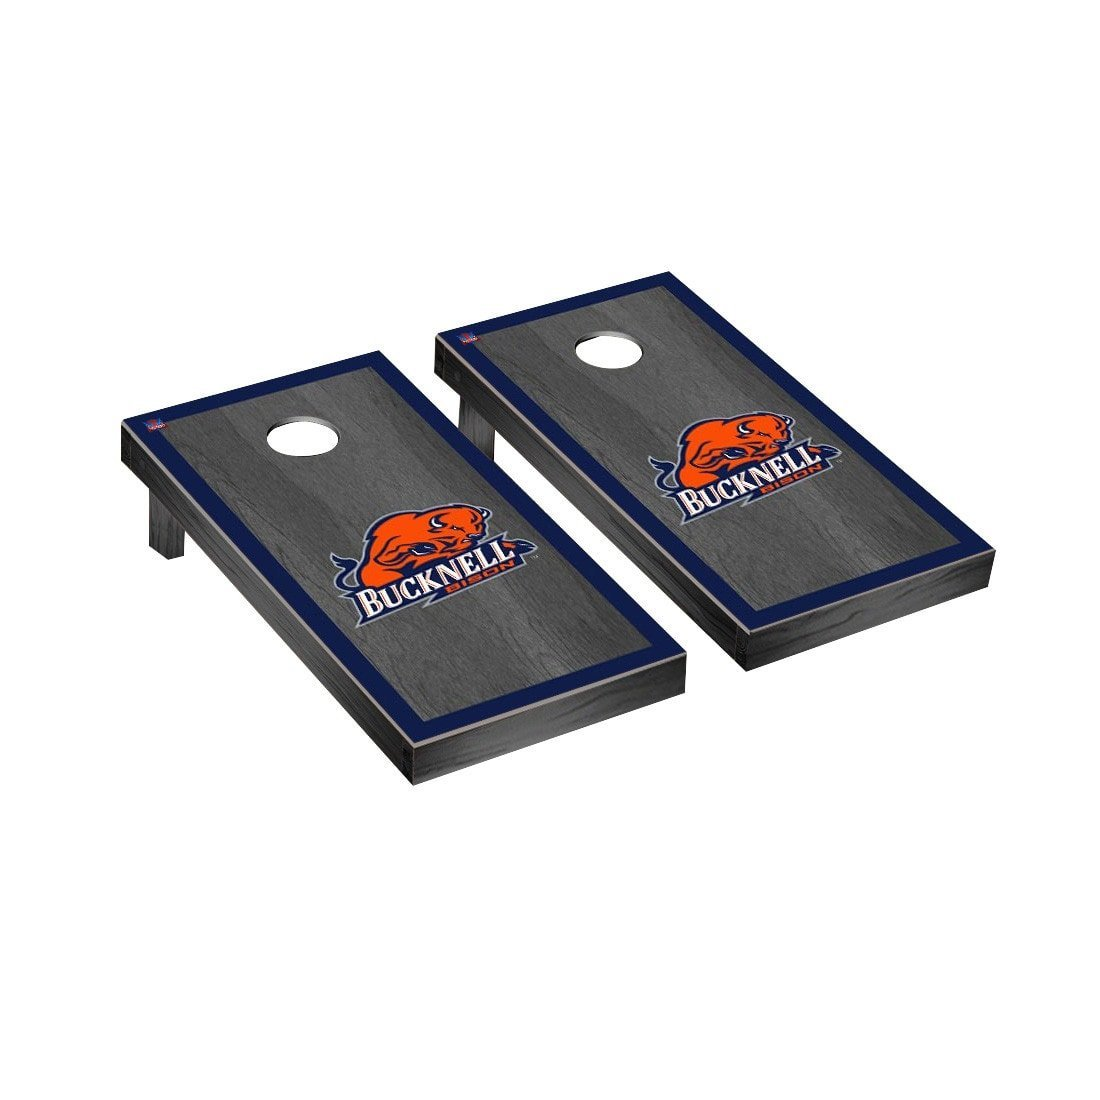 Victory Tailgate Bucknell Bison Regulation Cornhole Game Set Onyx Stained Border Version